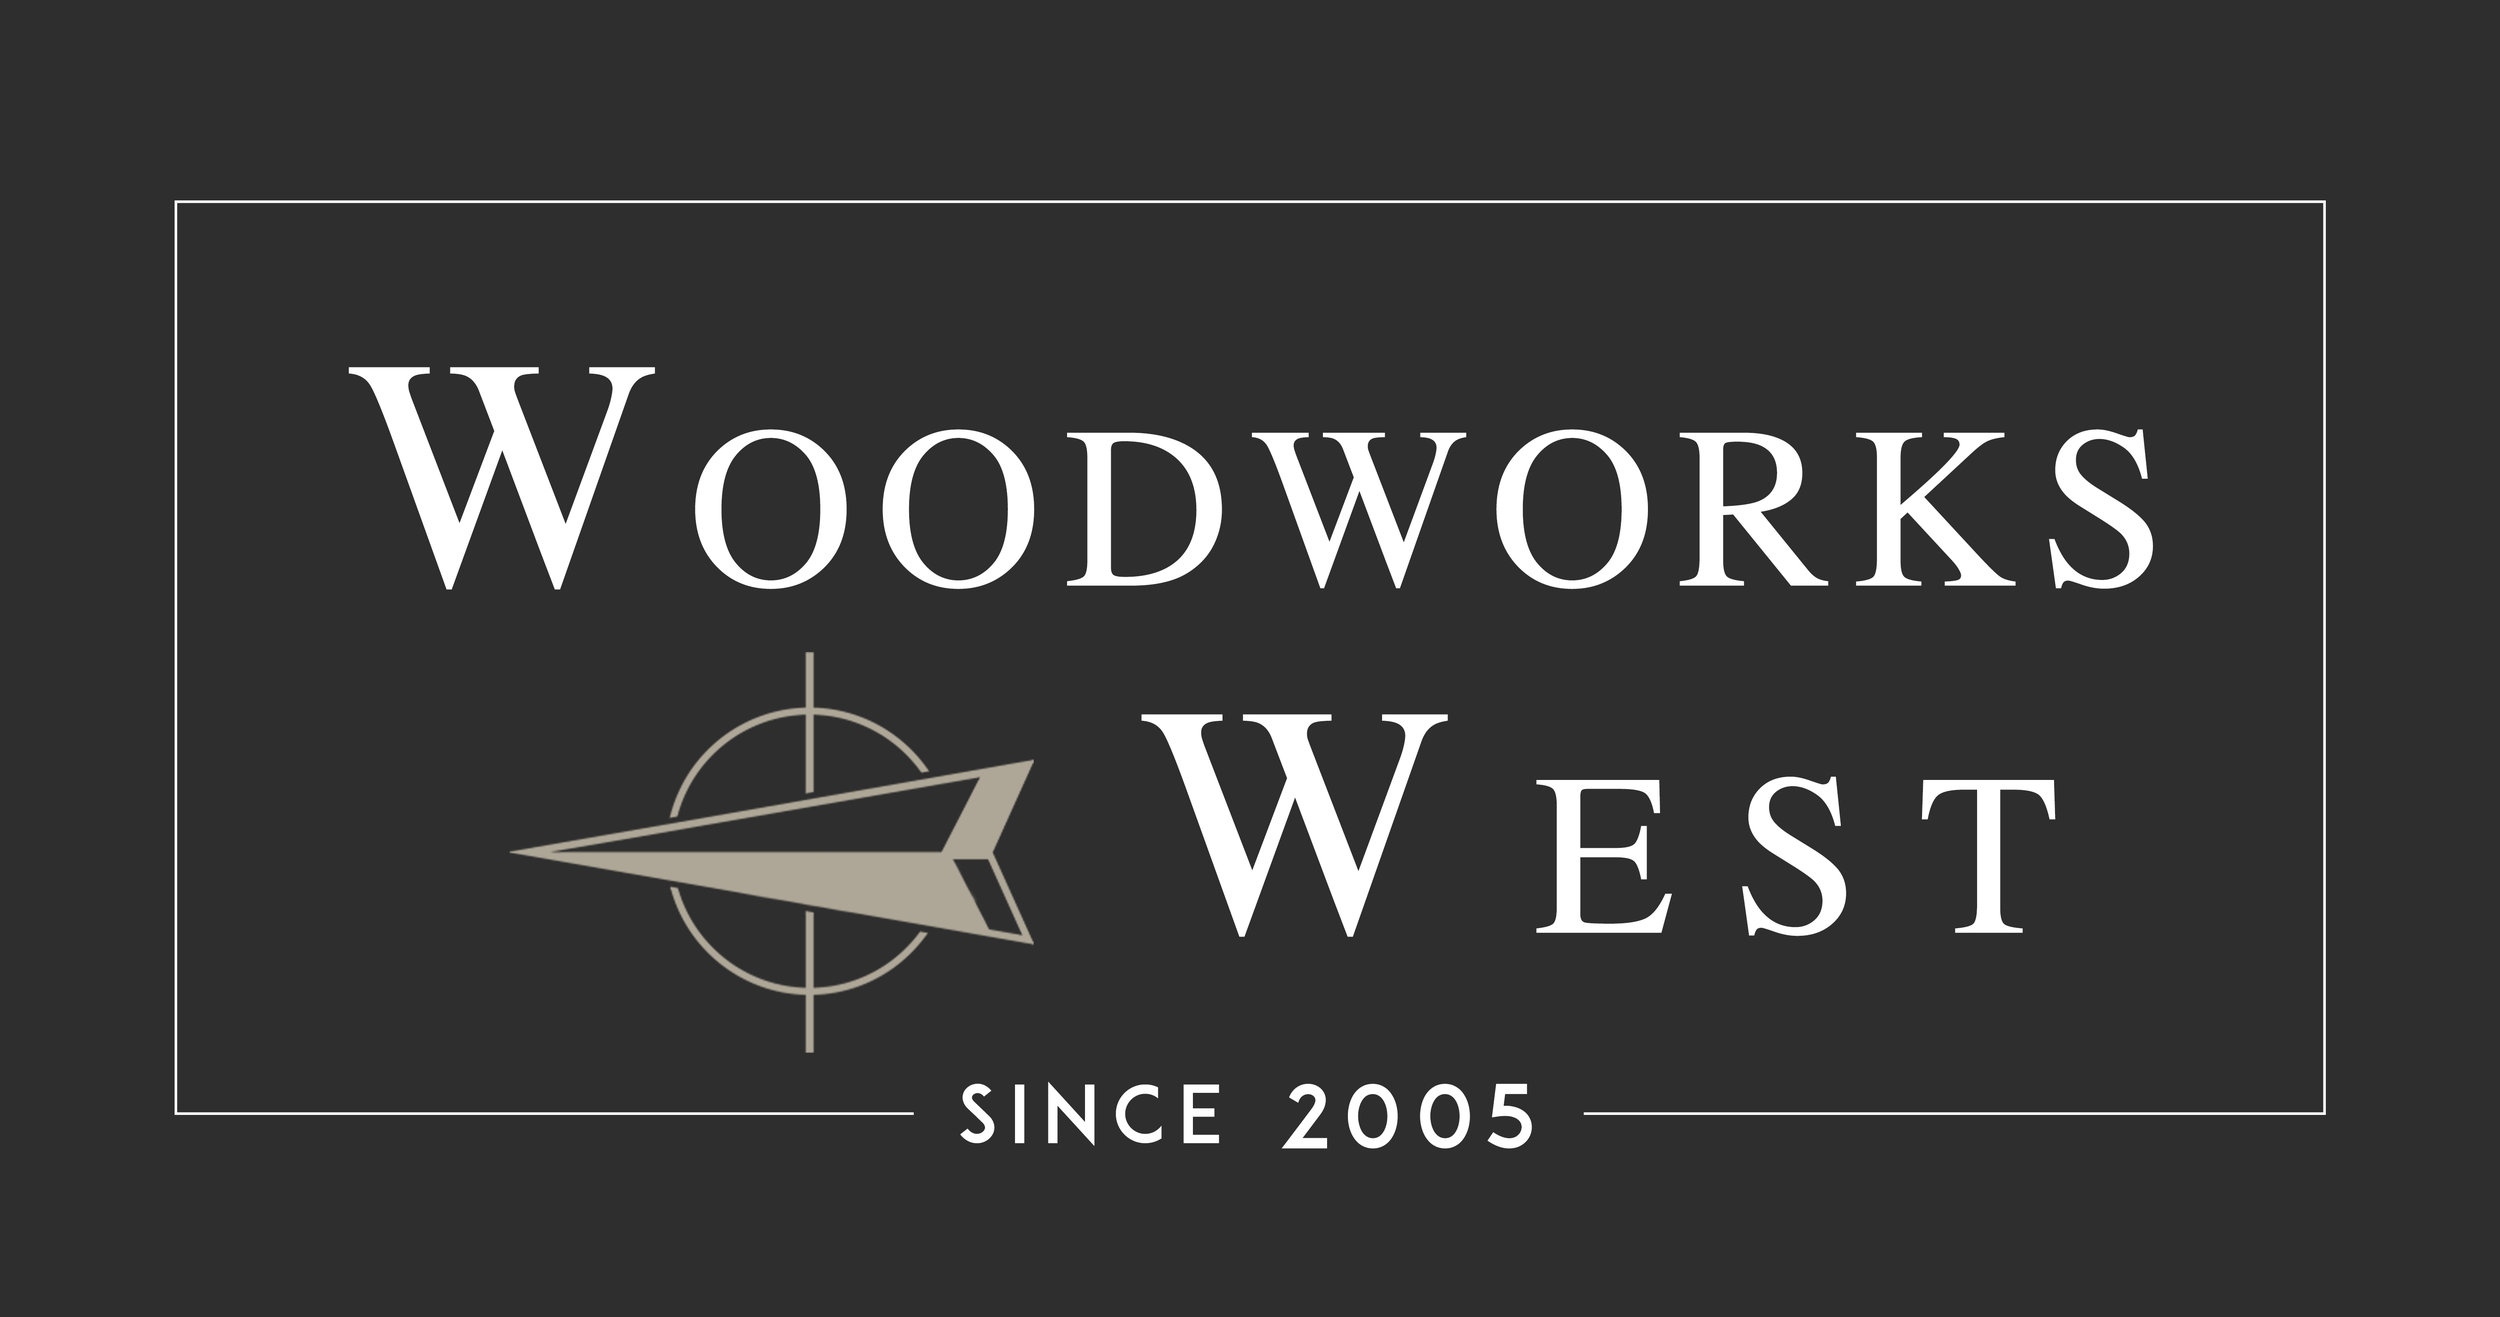 woodworks-west-montana-builders-logo.jpg